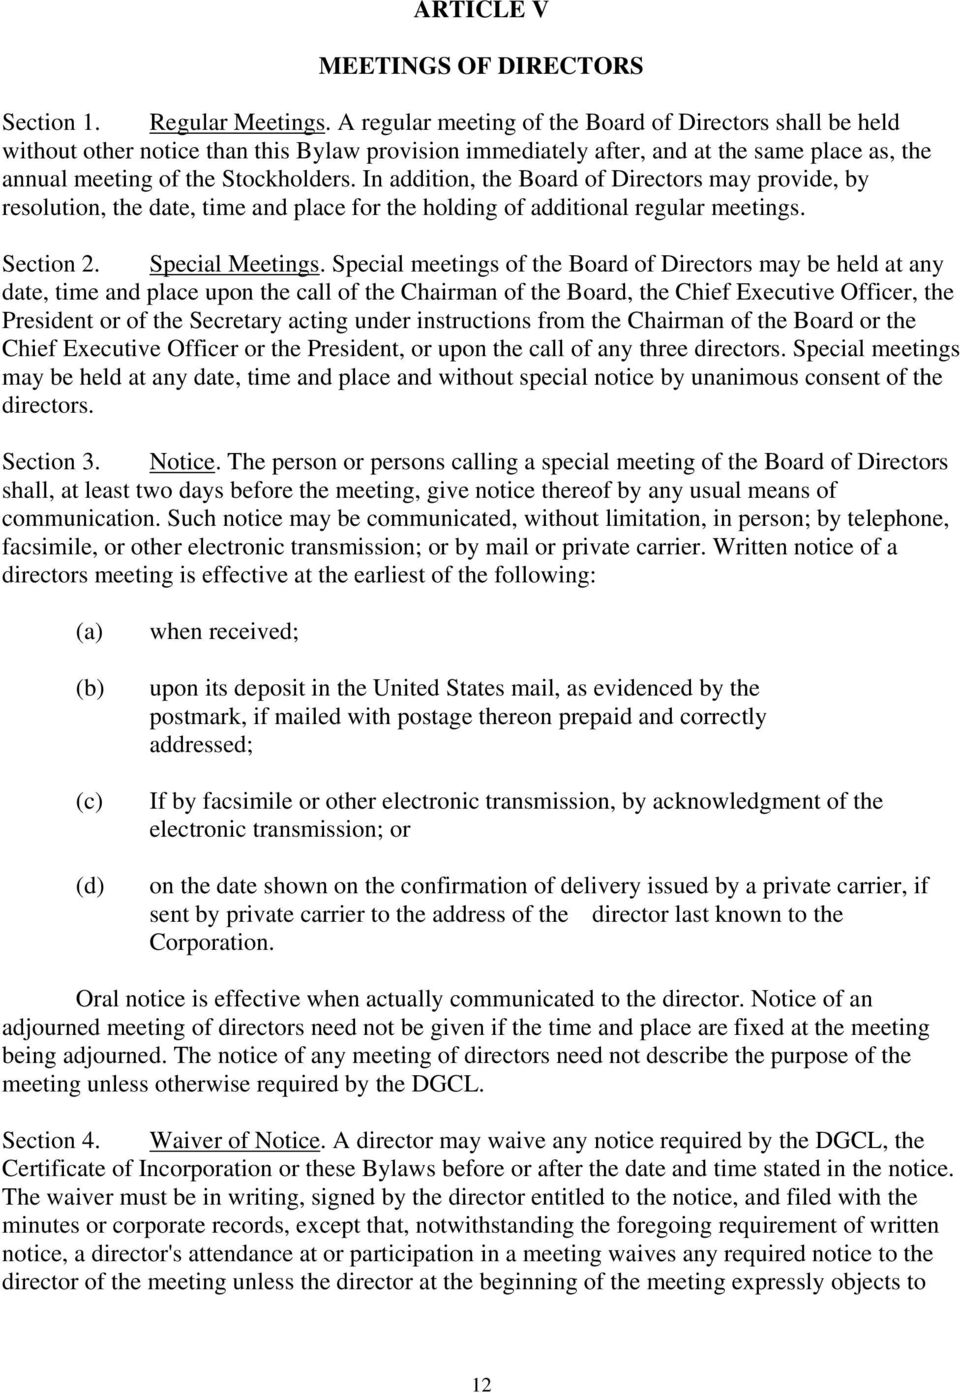 In addition, the Board of Directors may provide, by resolution, the date, time and place for the holding of additional regular meetings. Section 2. Special Meetings.